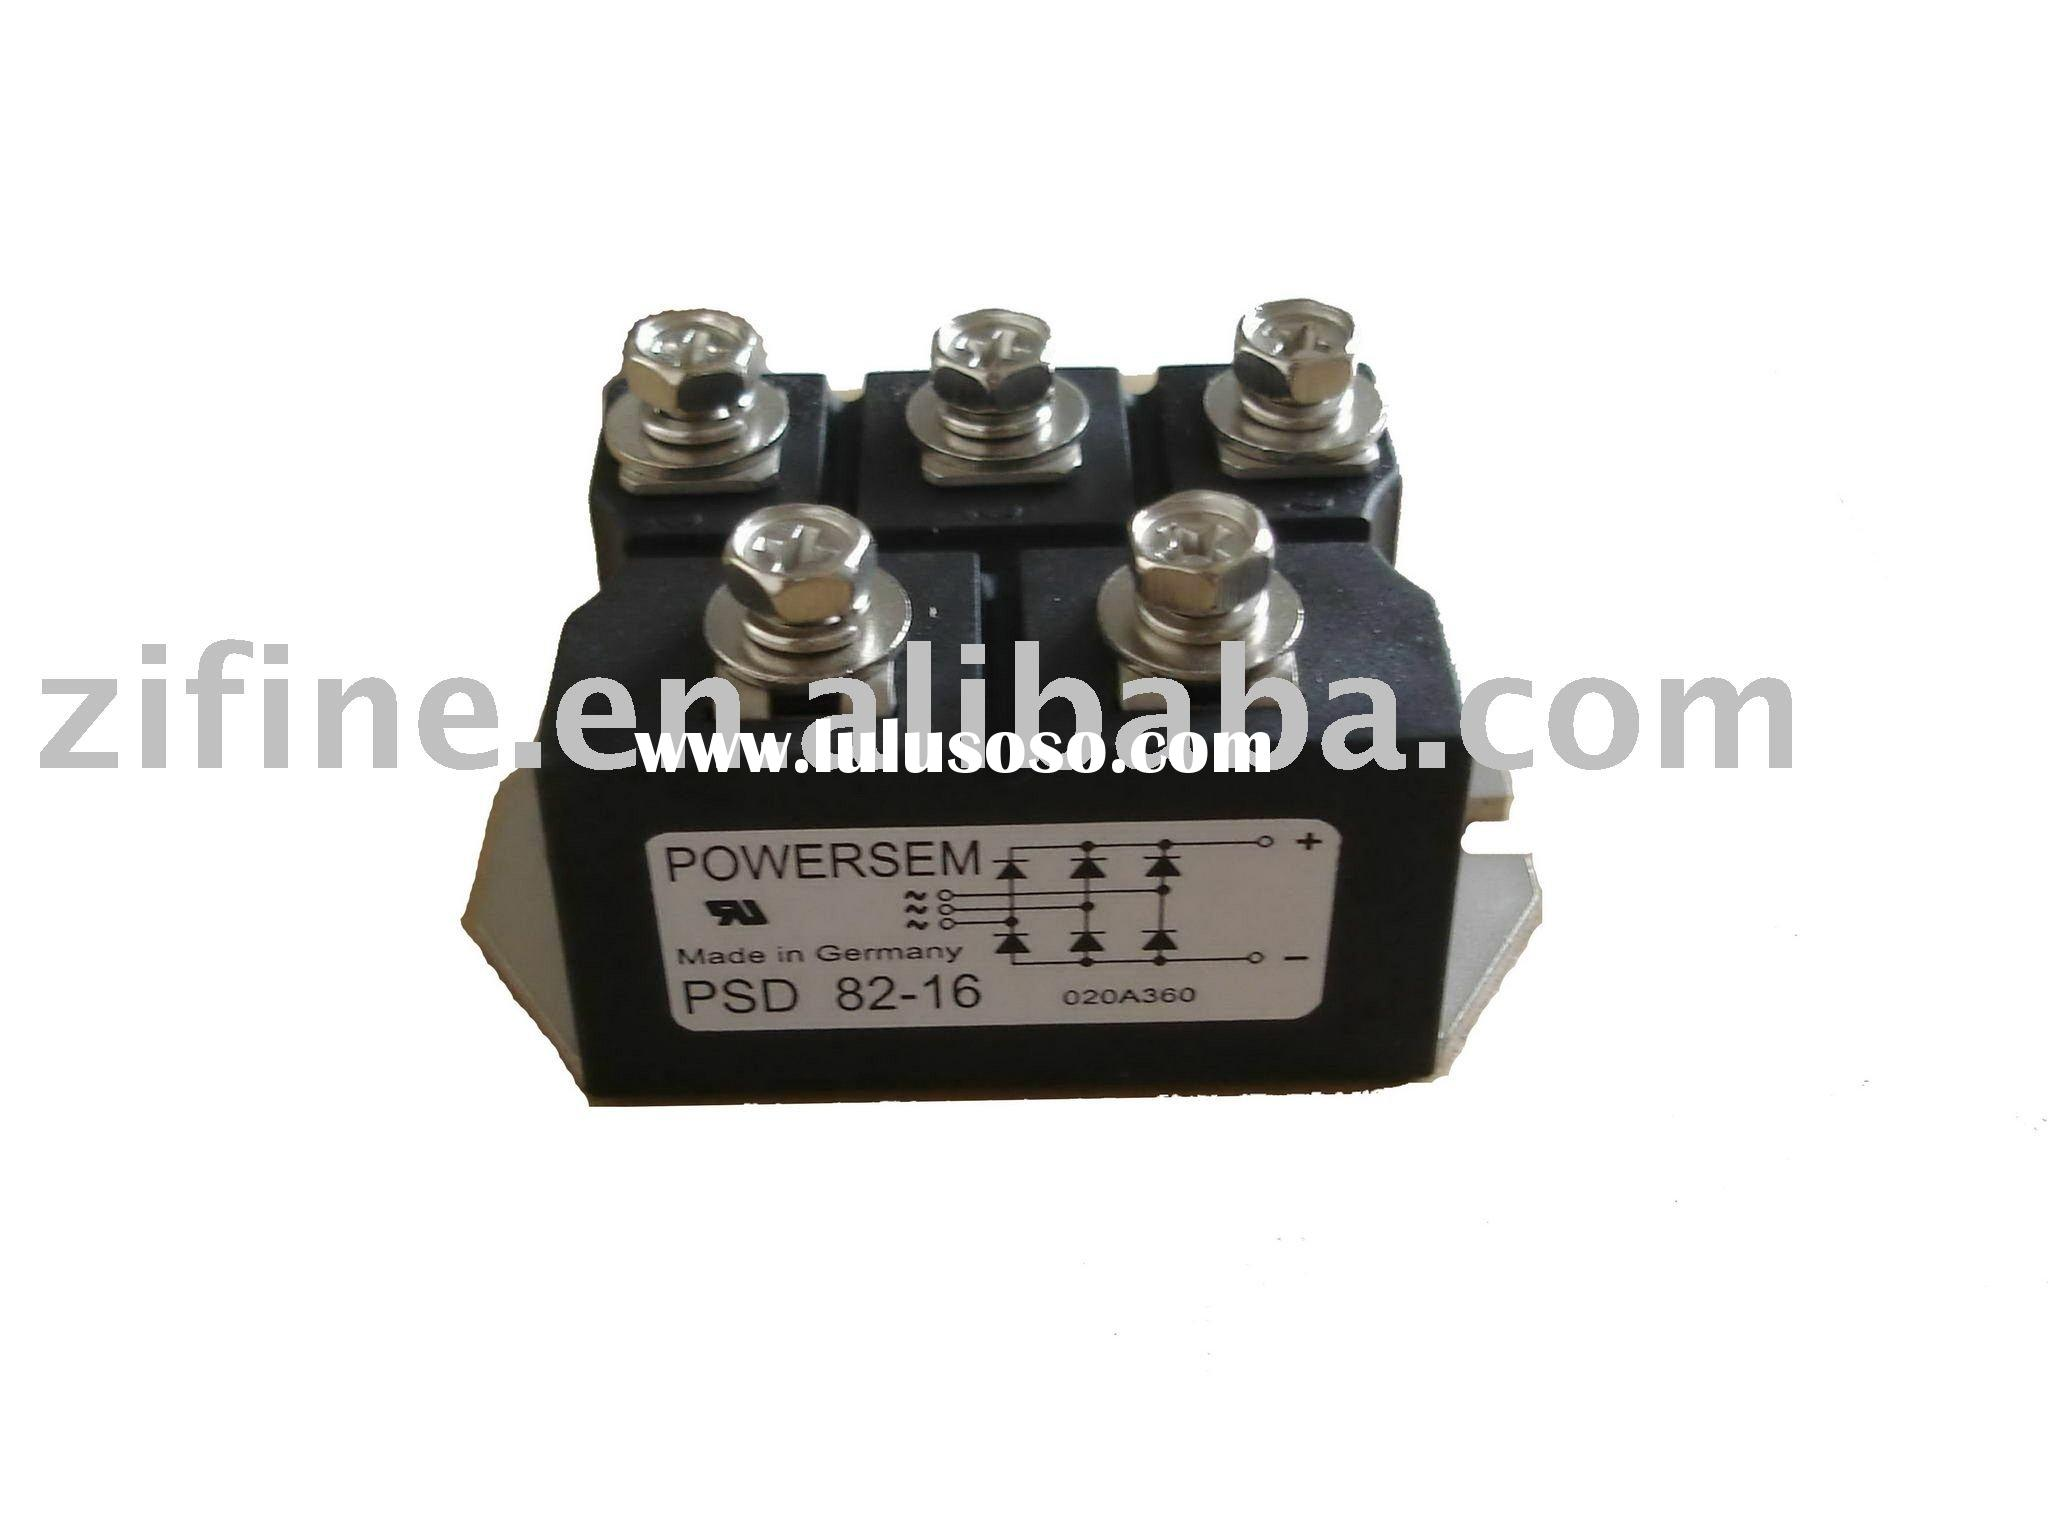 Bridge Rectifier Module Manufacturers In Igbt Inverter Circuit Lulusoso Psd82 16